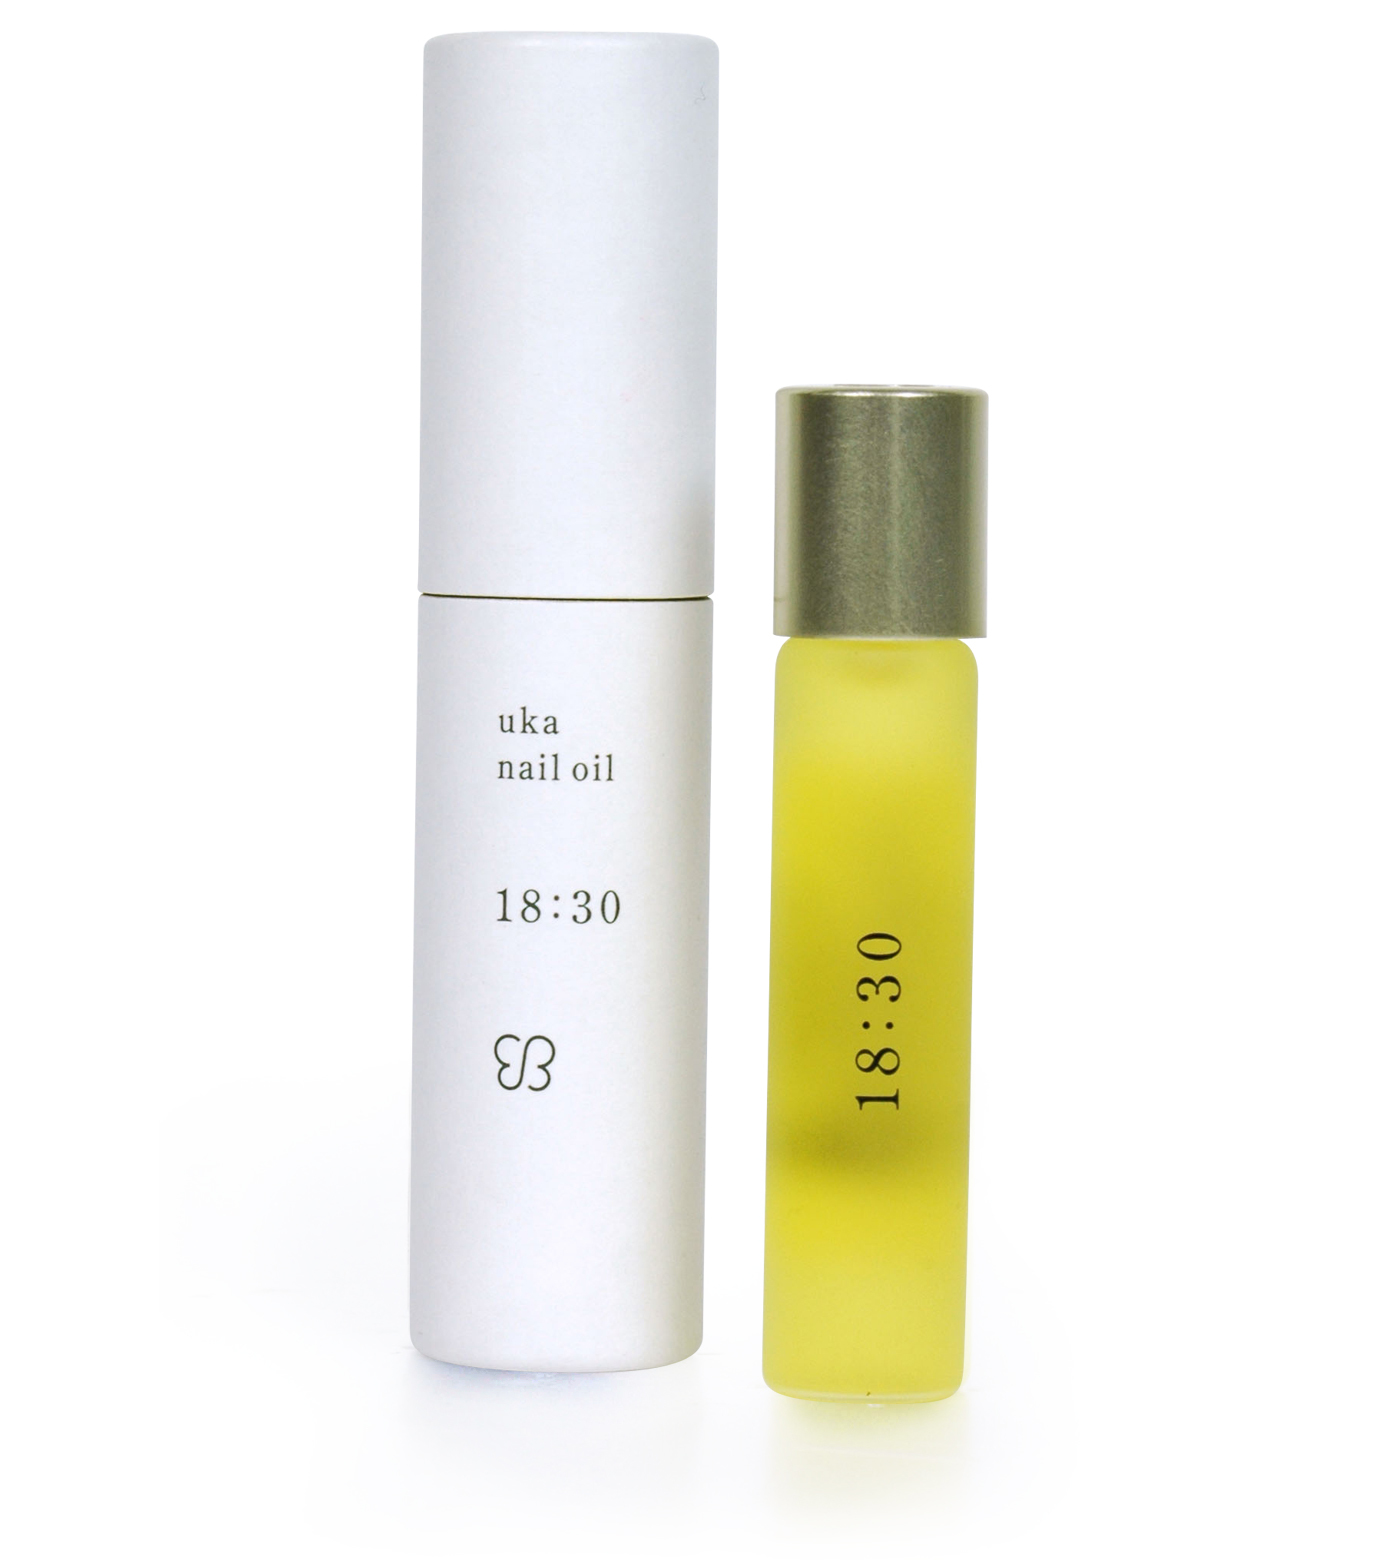 uka(ウカ)のnail oil 18:30-LIGHT YELLOW(BATH-BODY/BATH / BODY)-uka1830 拡大詳細画像1